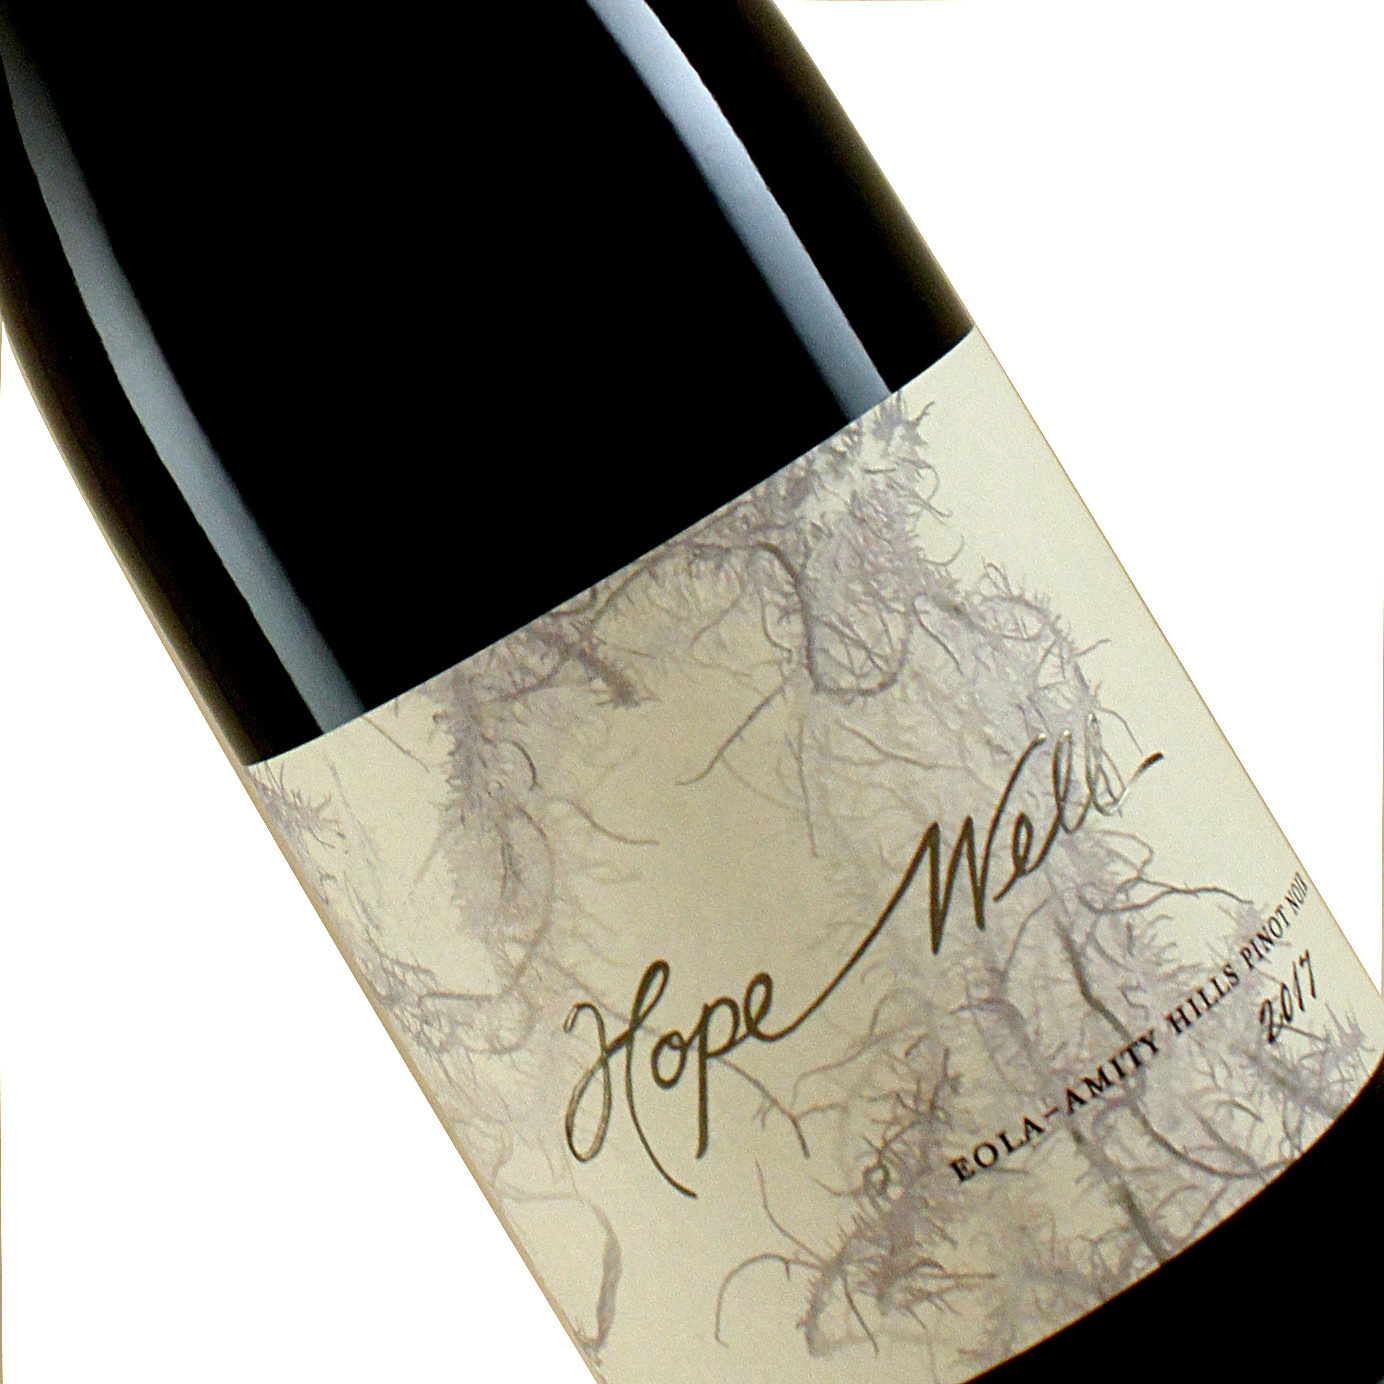 Hope Well 2017 Pinot Noir Eola-Amity Hills